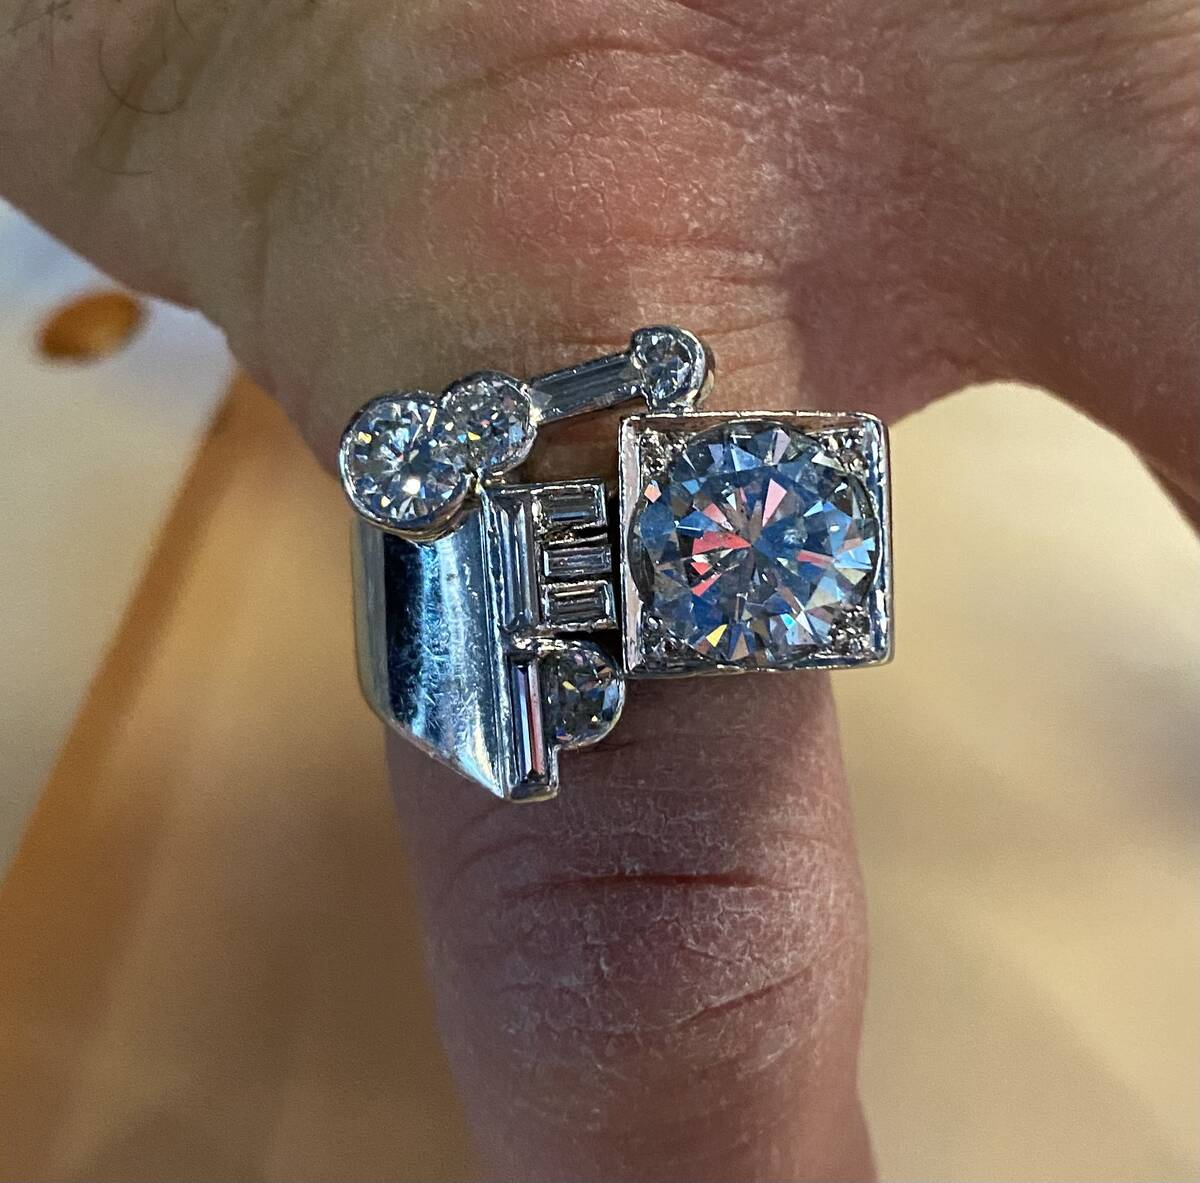 The Elvis Presley stage ring once owned by Gordie Brown, now in the possession of Las Vegas jew ...